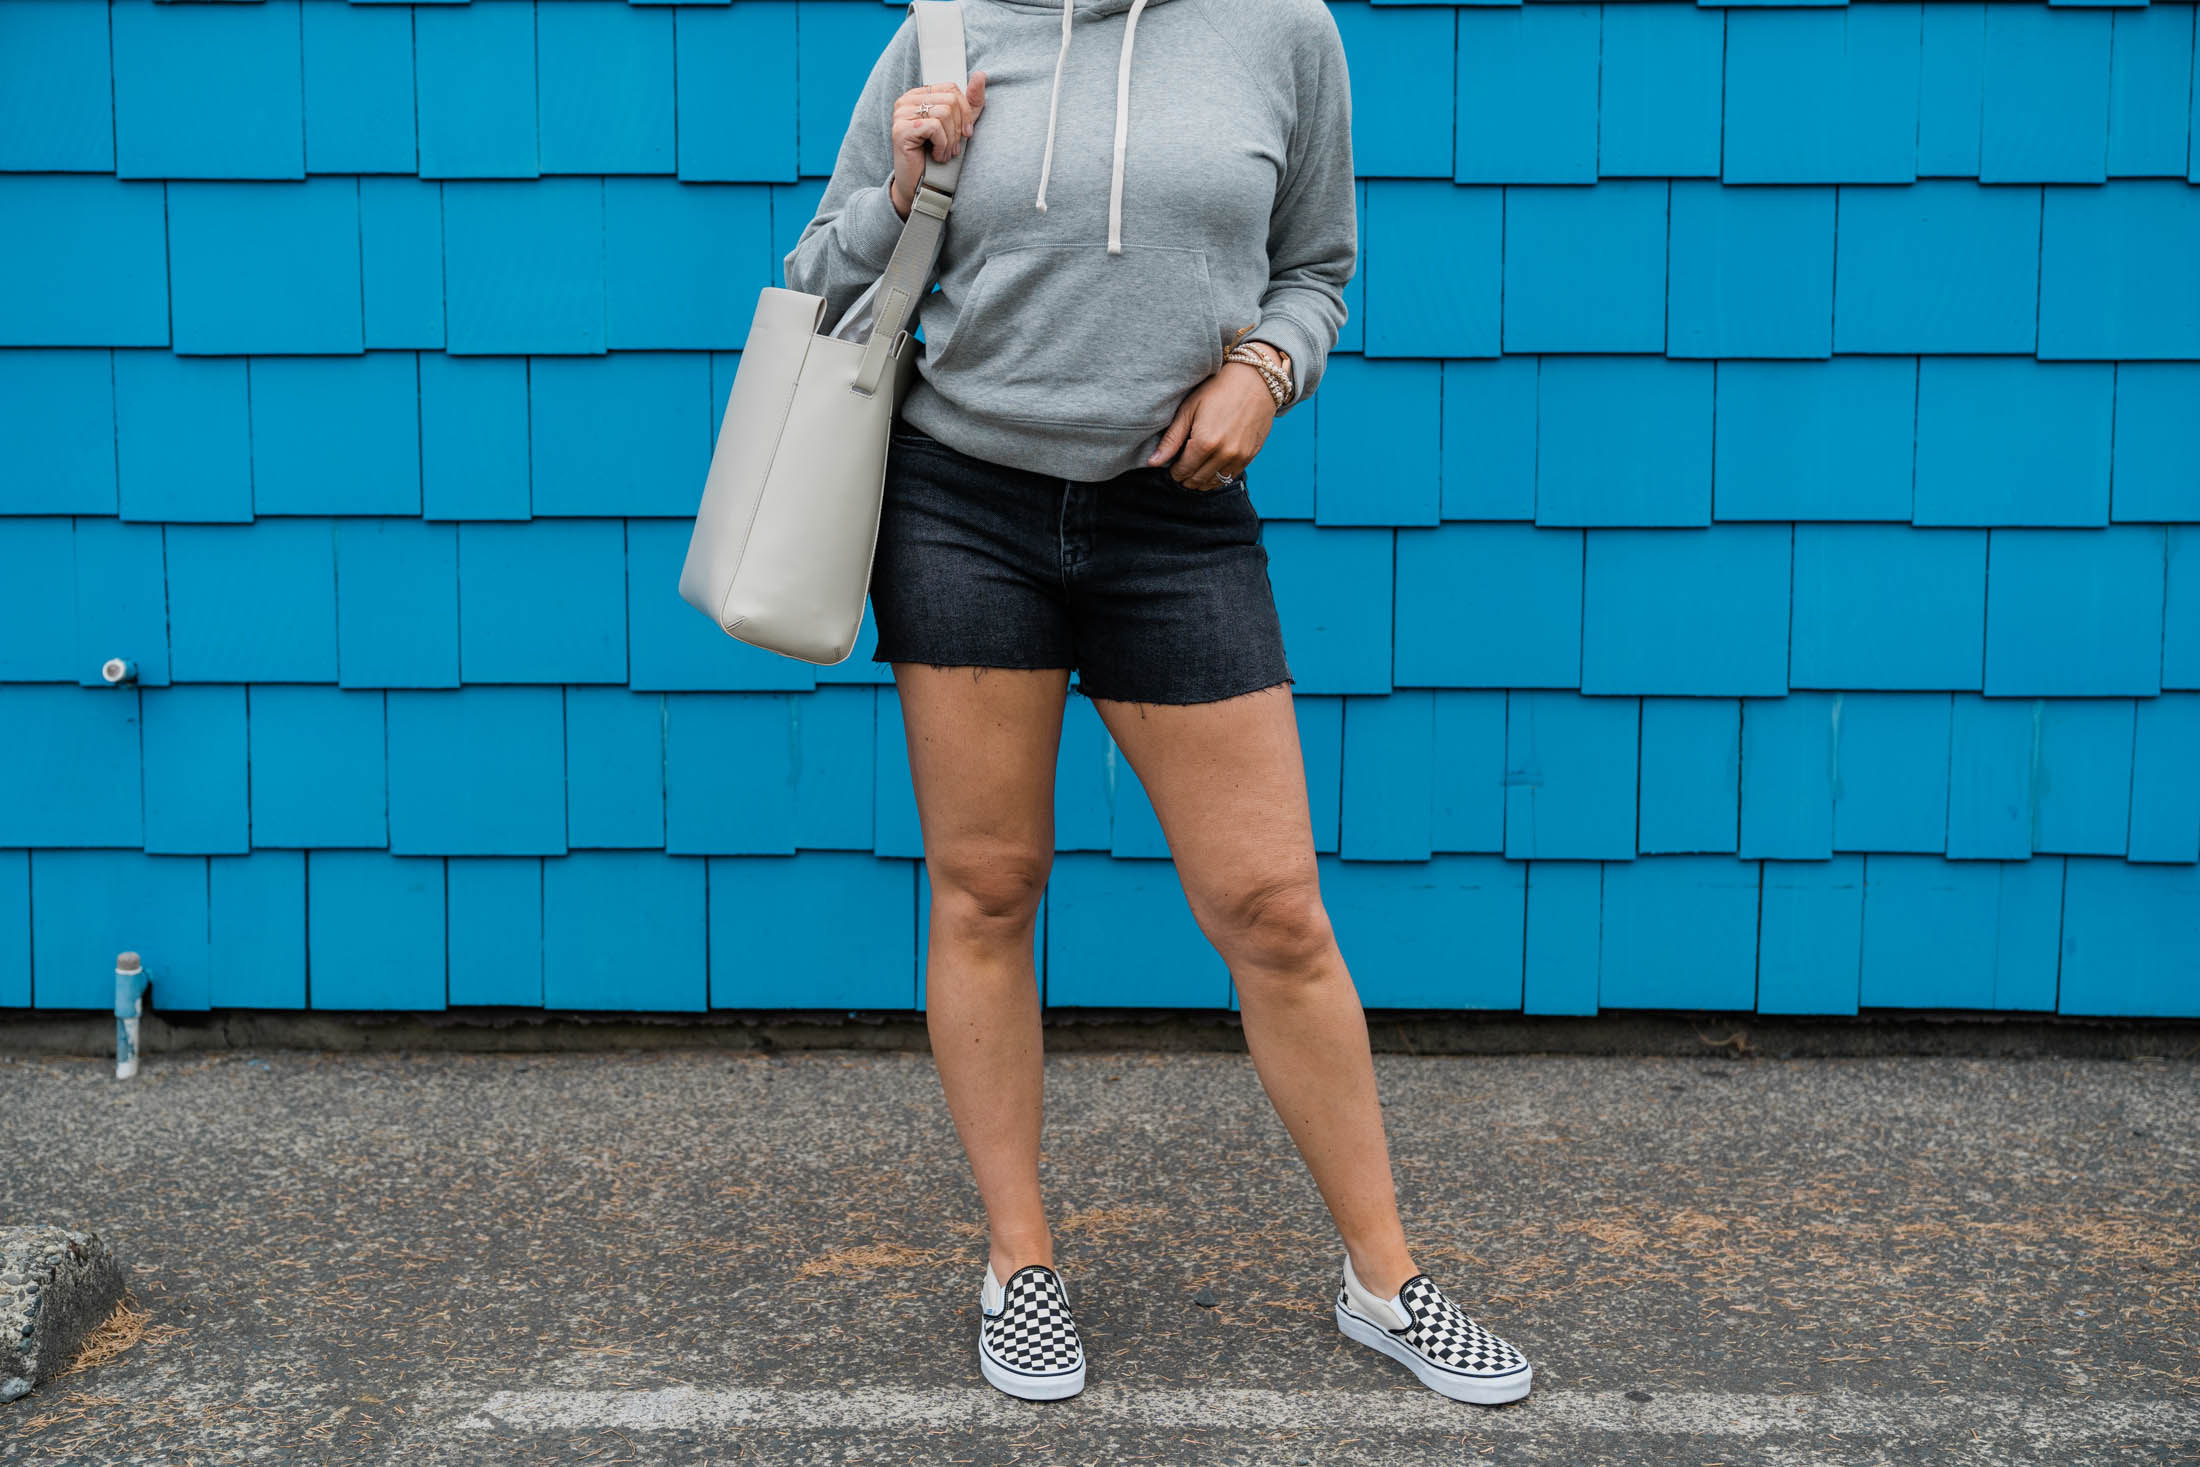 Like a solid '90s throwback, TME is all over Classic Vans Slip-ons...again. All the heart eyes for black & white checkerboard sneakers...a summer fave.